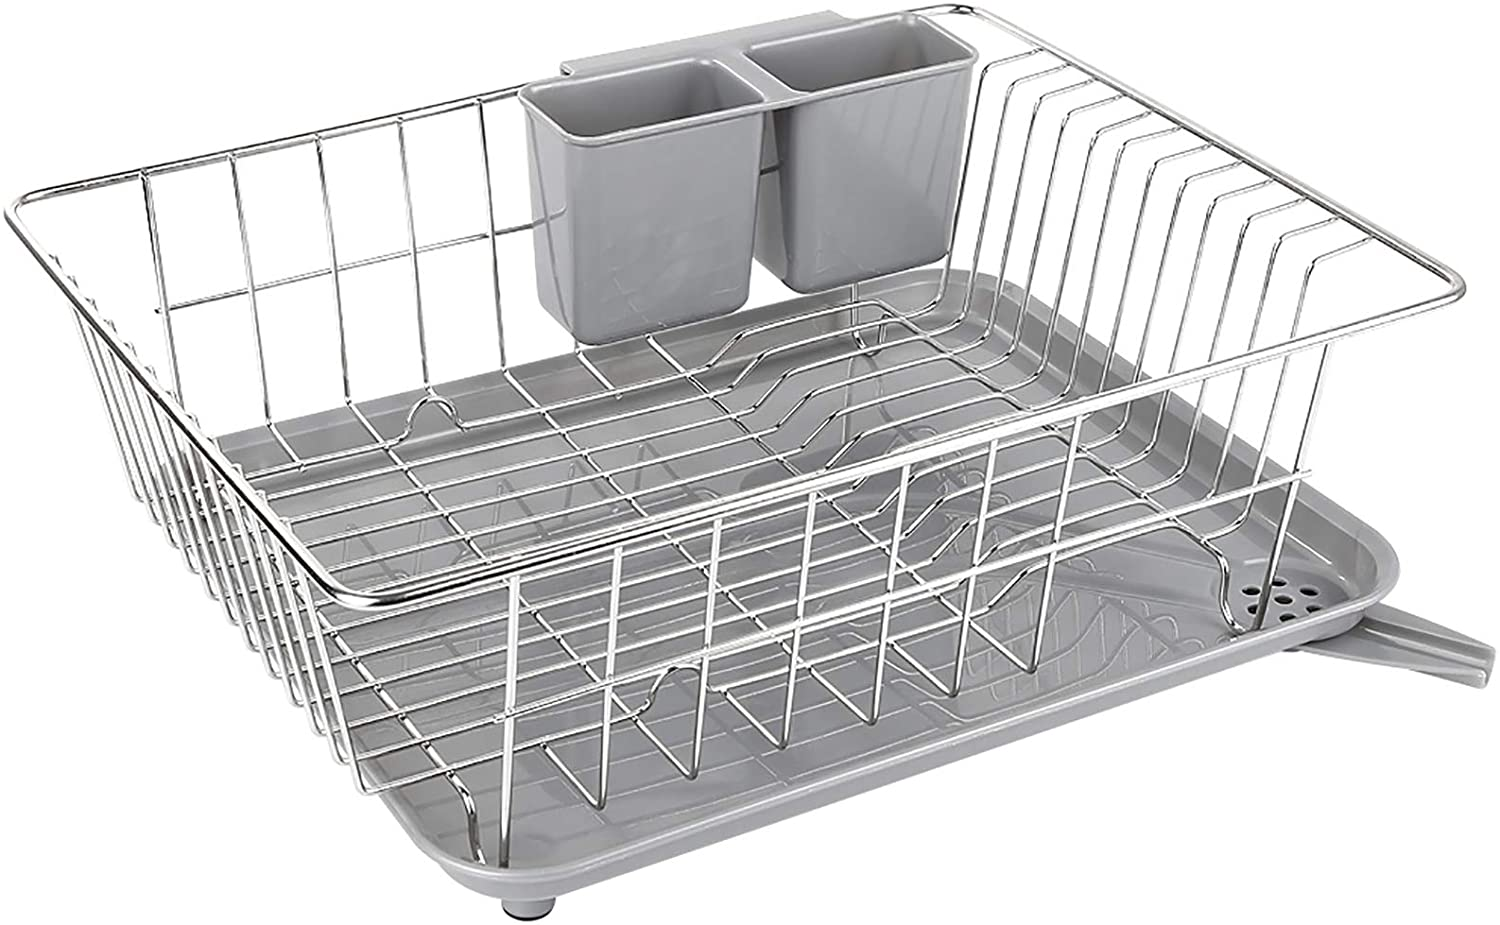 Amazon Com Whitgo Dish Drying Rack With Drain Board Stainless Steel Dish Drainer Drying Rack With Utensil Holder For Kitchen Counter Dish Drain Rack With One Cleaning Cloth Kitchen Dining